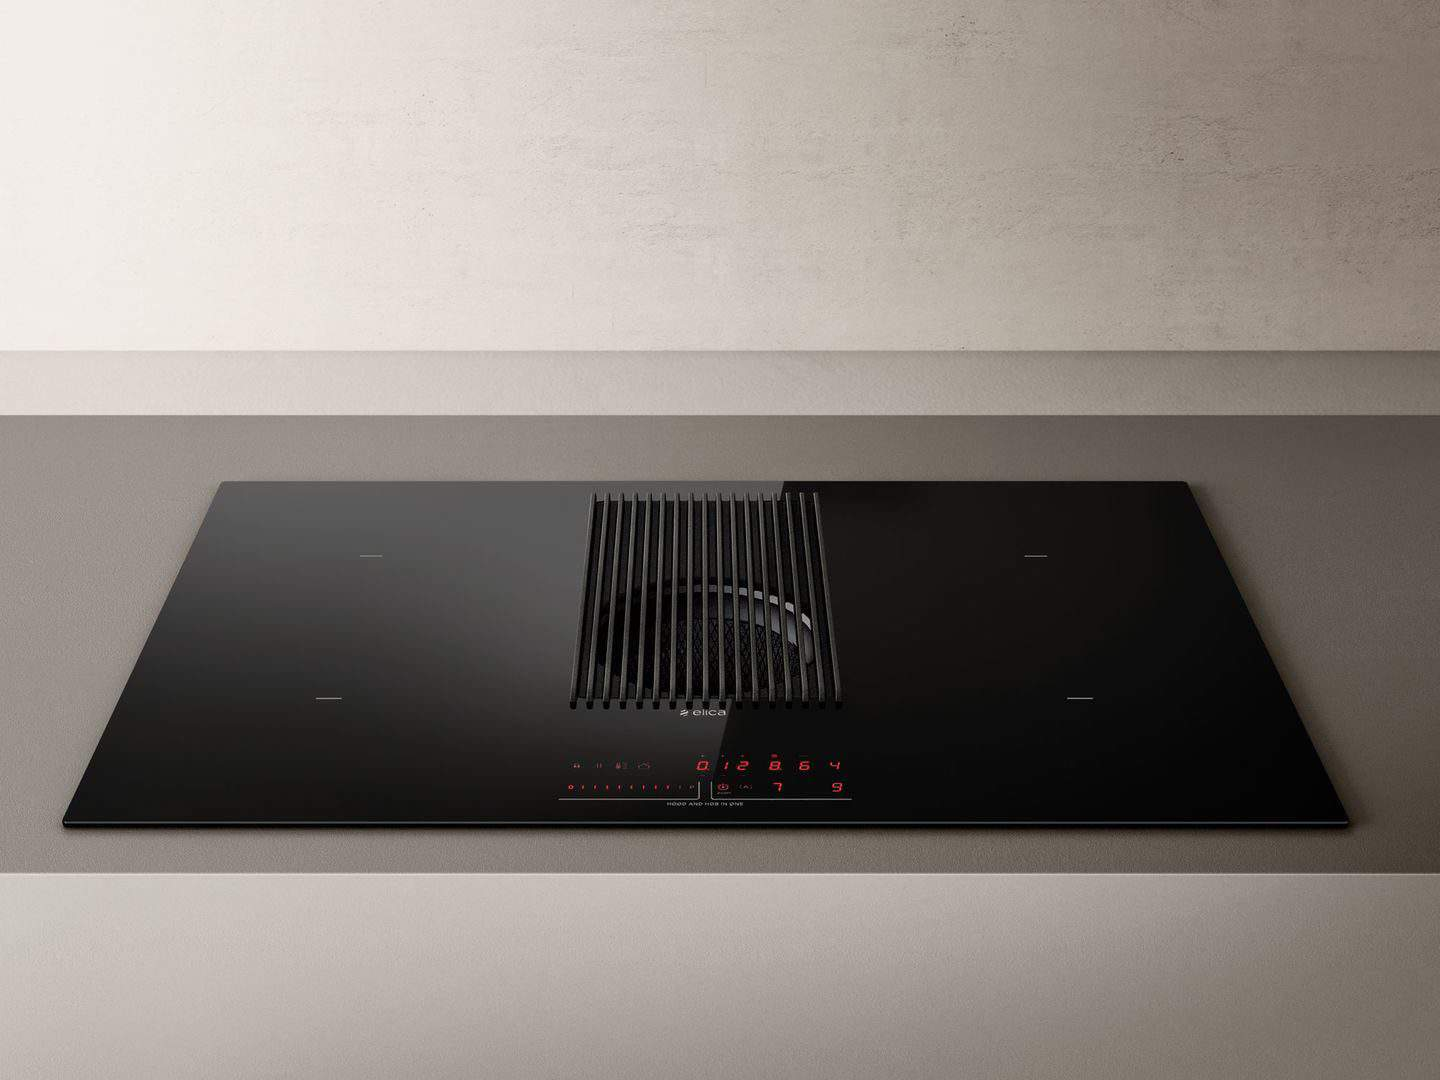 NikolaTesla Prime extractor hob from Elica with control panel illuminated